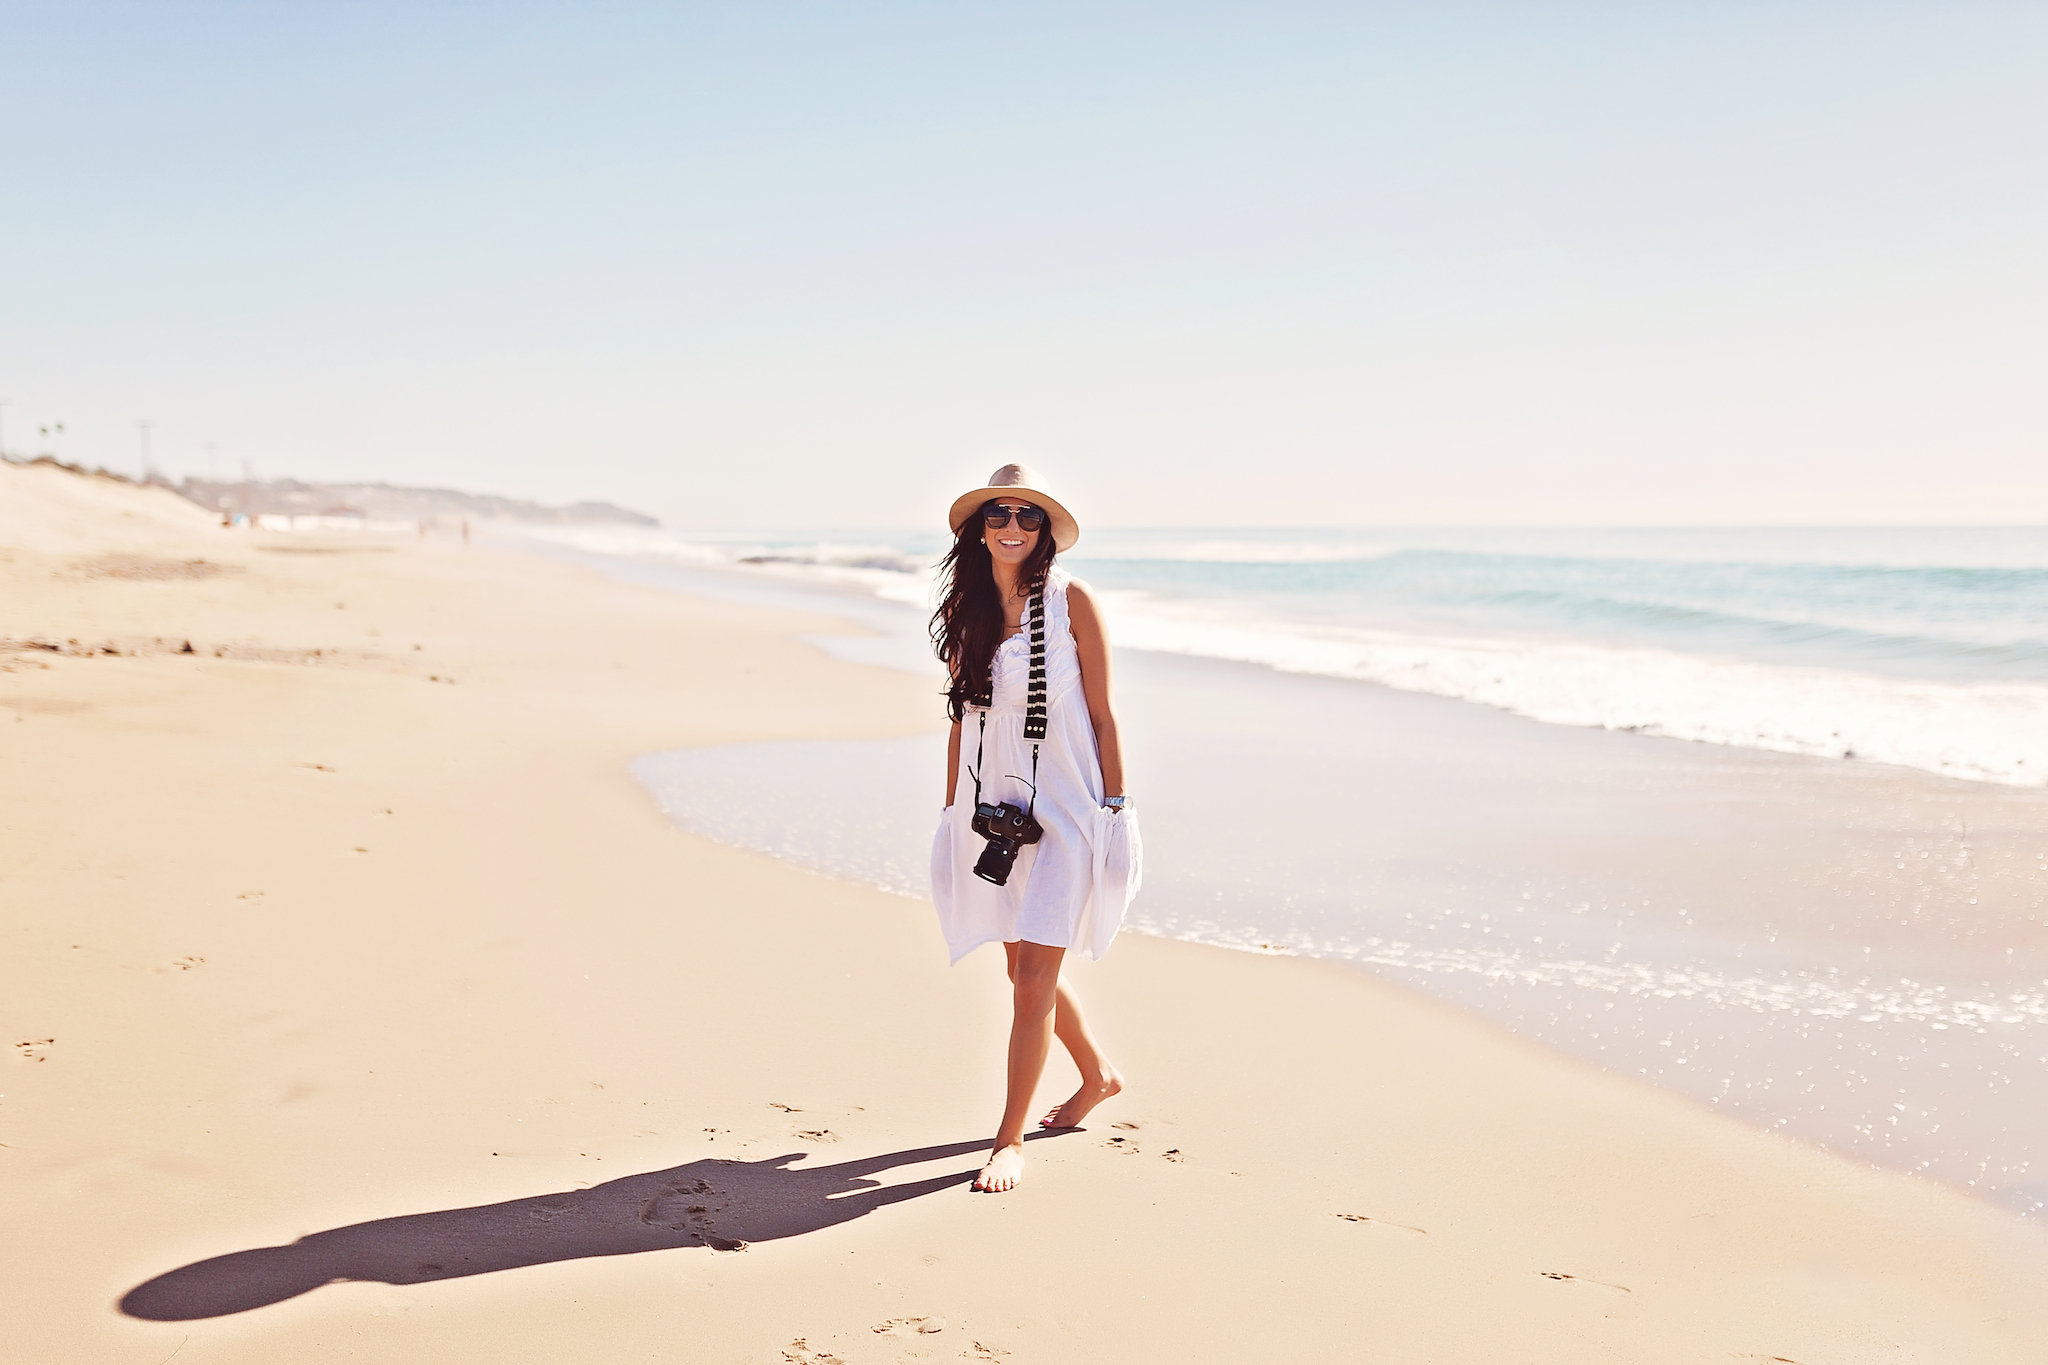 California outfit inspiration for your next East Coast road trip! #California #USA #CA